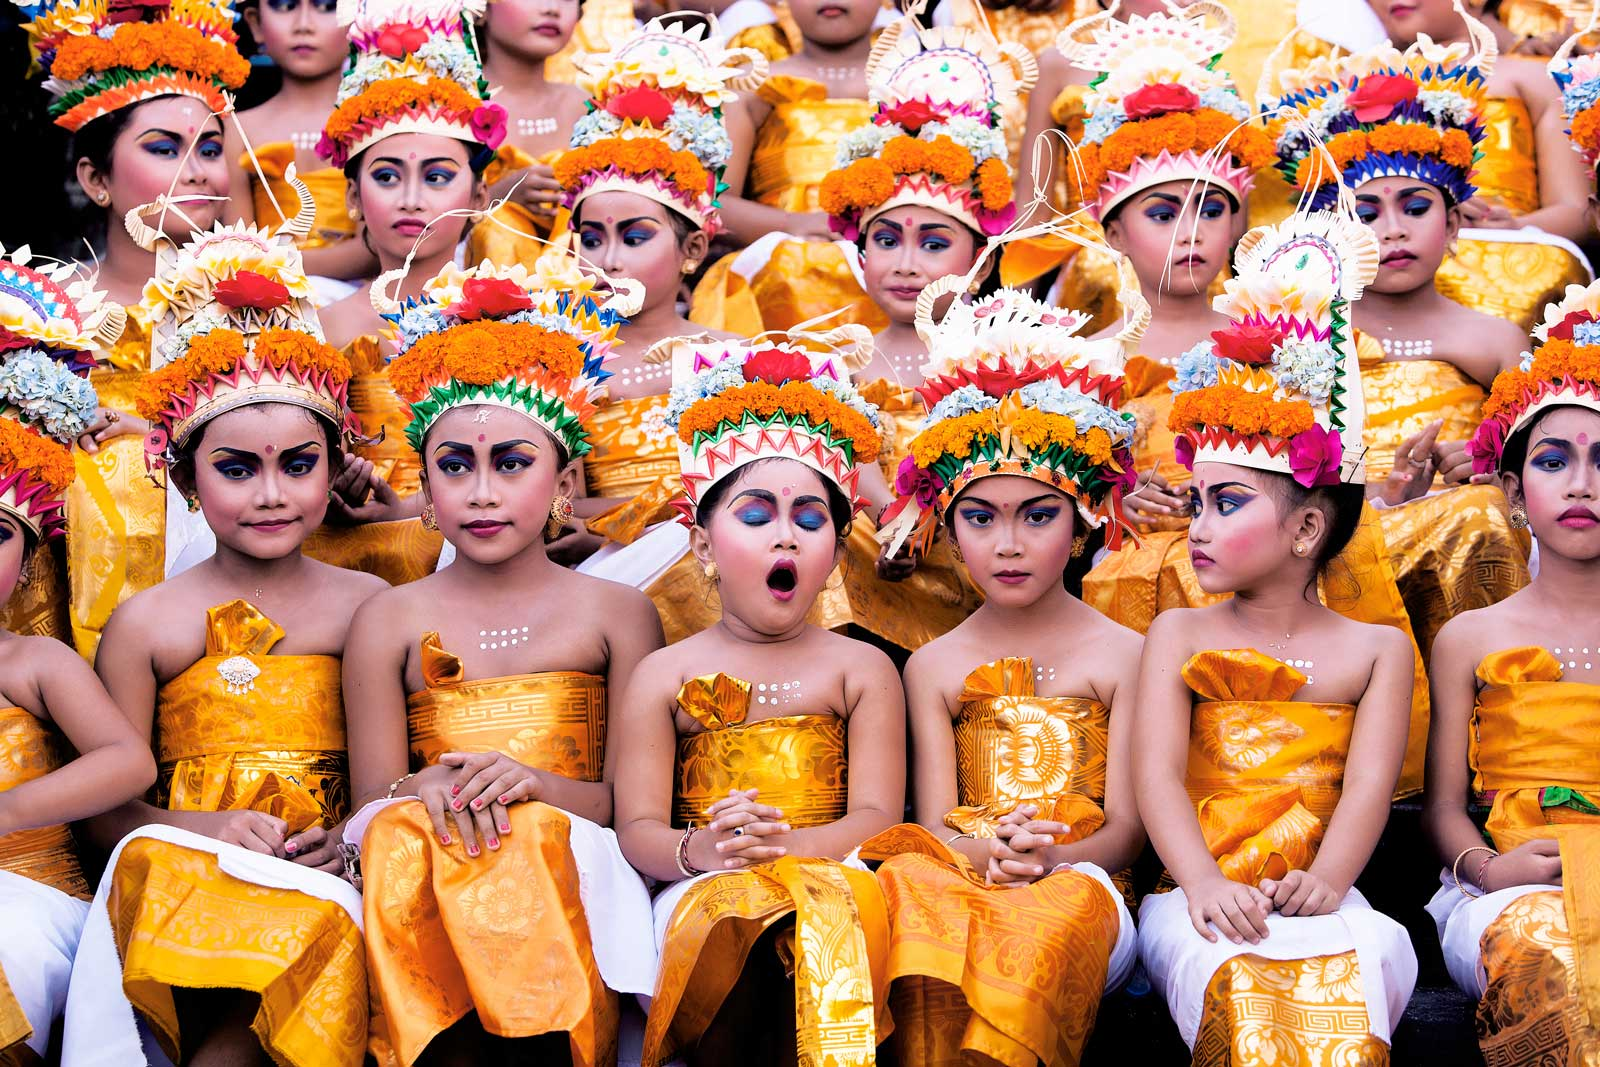 Young girls wait for their turn to perform at the Melasti Festival in Bali, which is conducted once a year in conjunction with Nyepi or Silent Day.